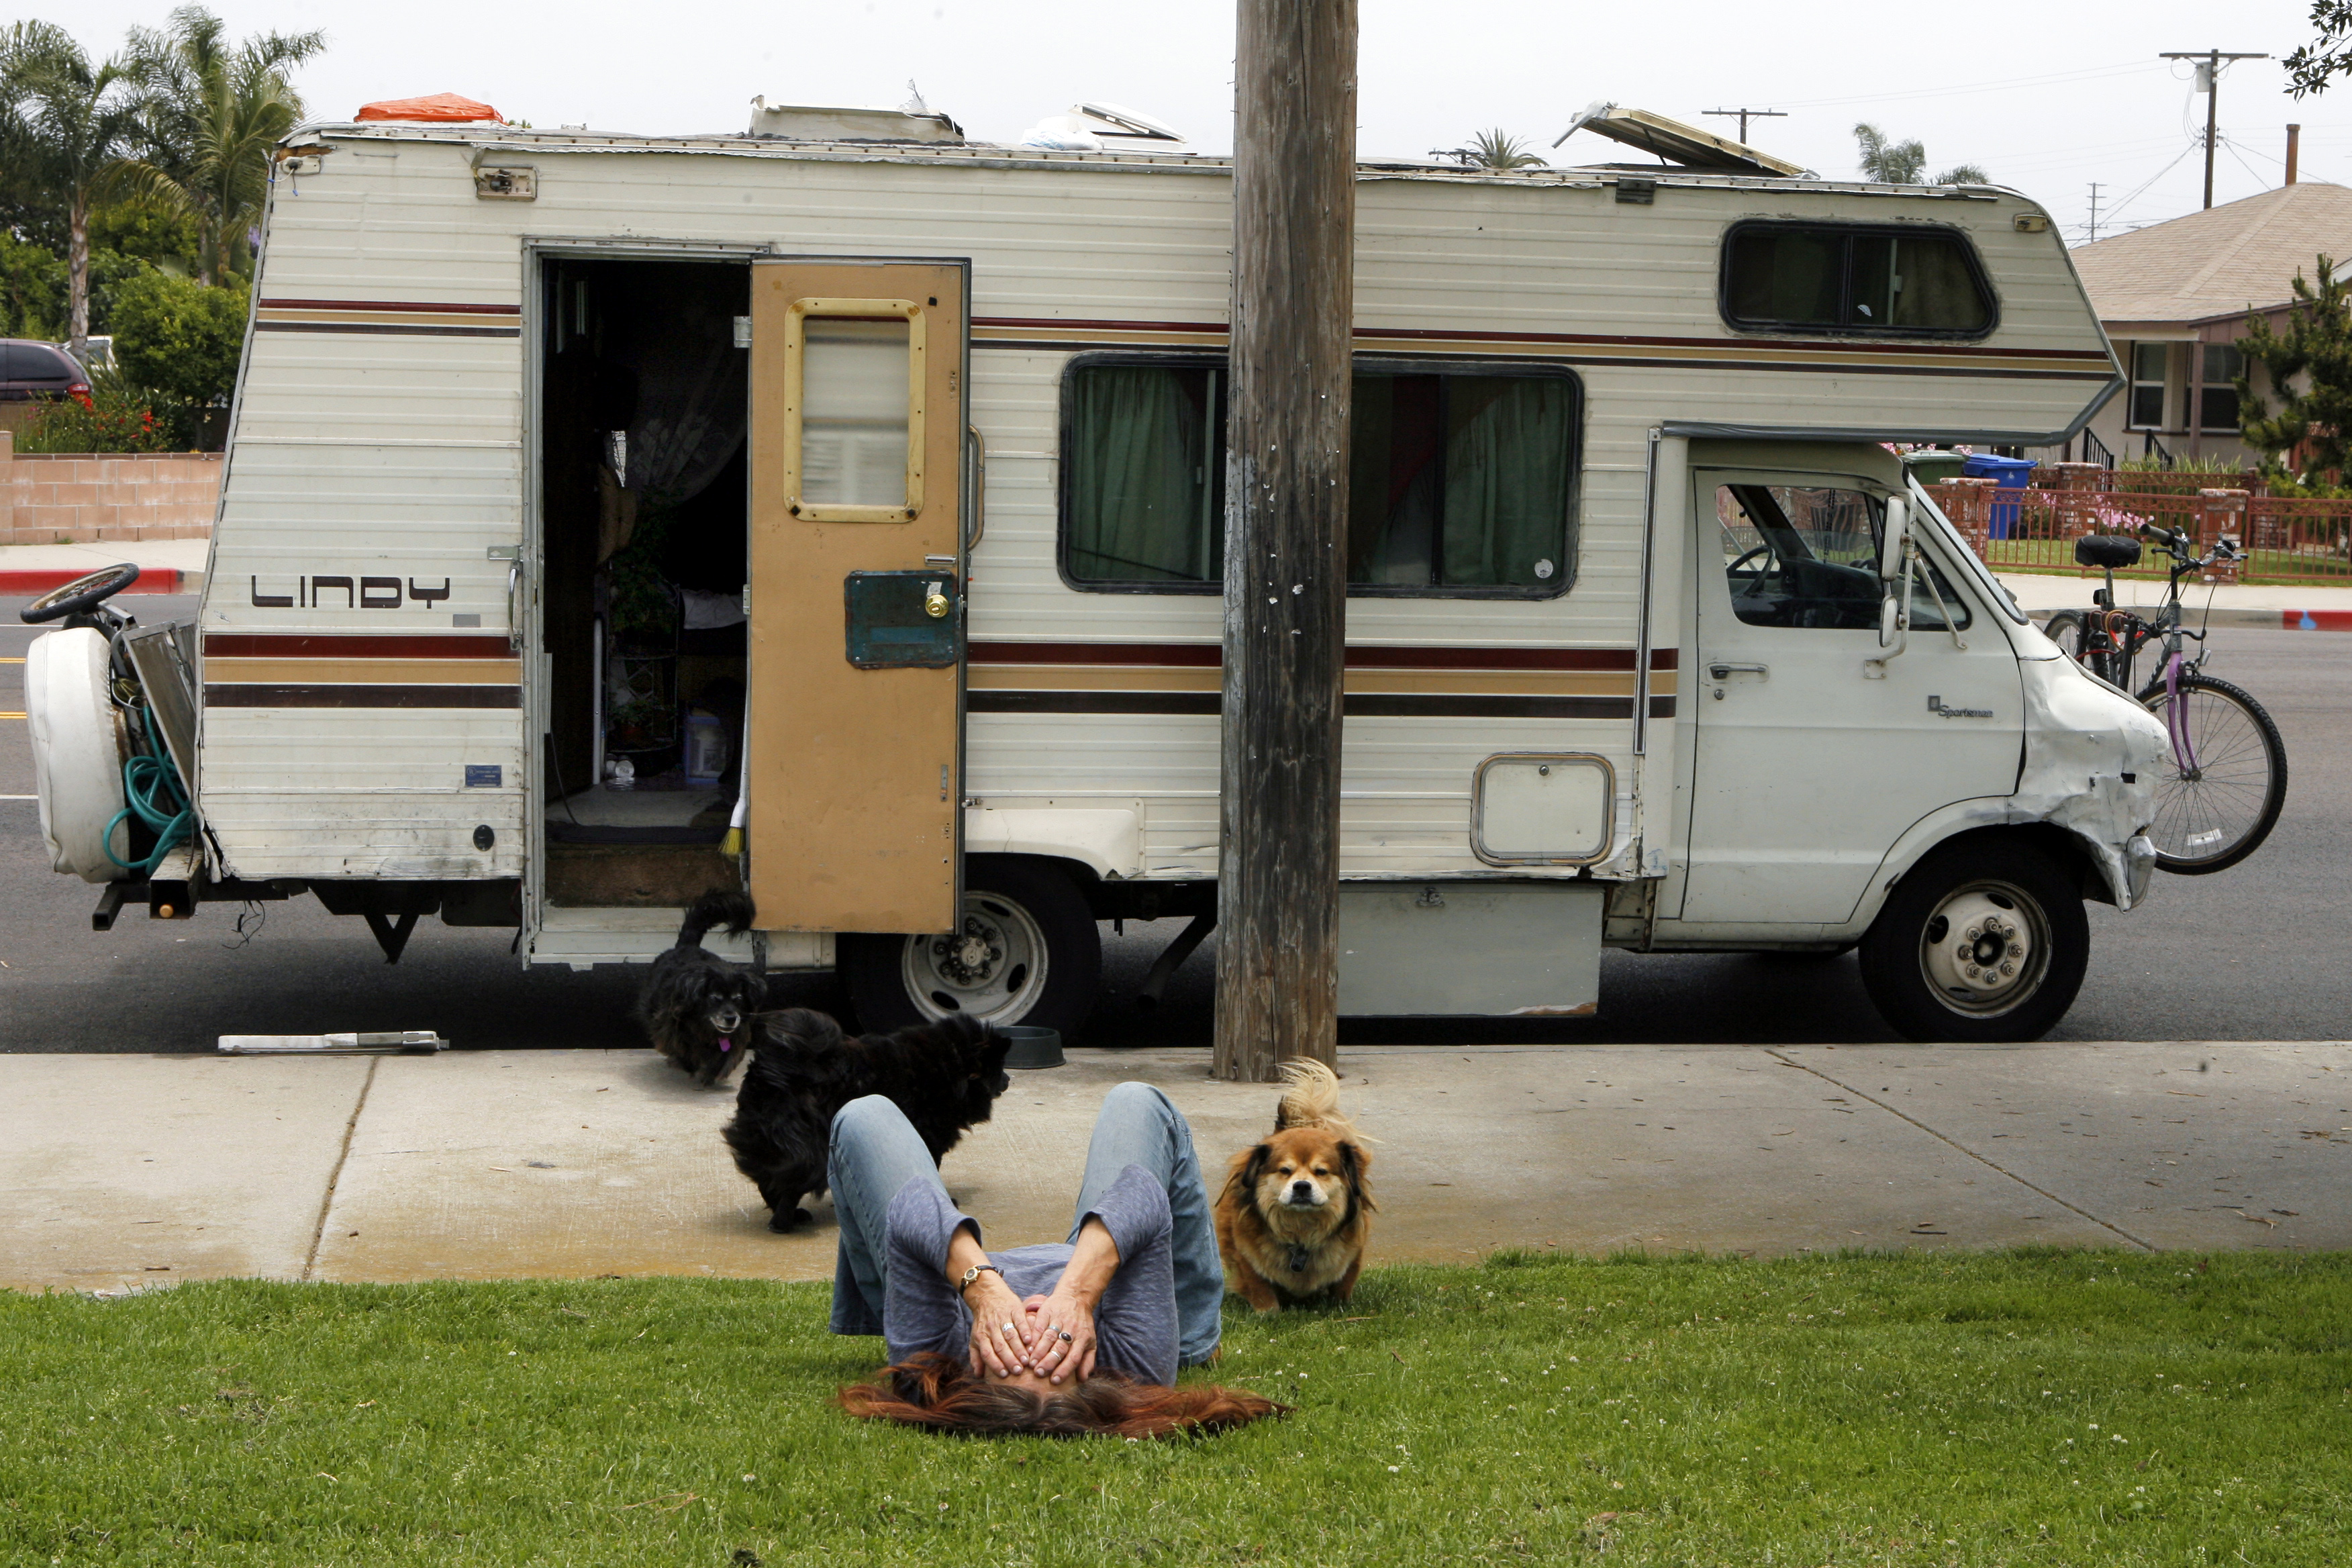 LA's ban on sleeping in vehicles lapses